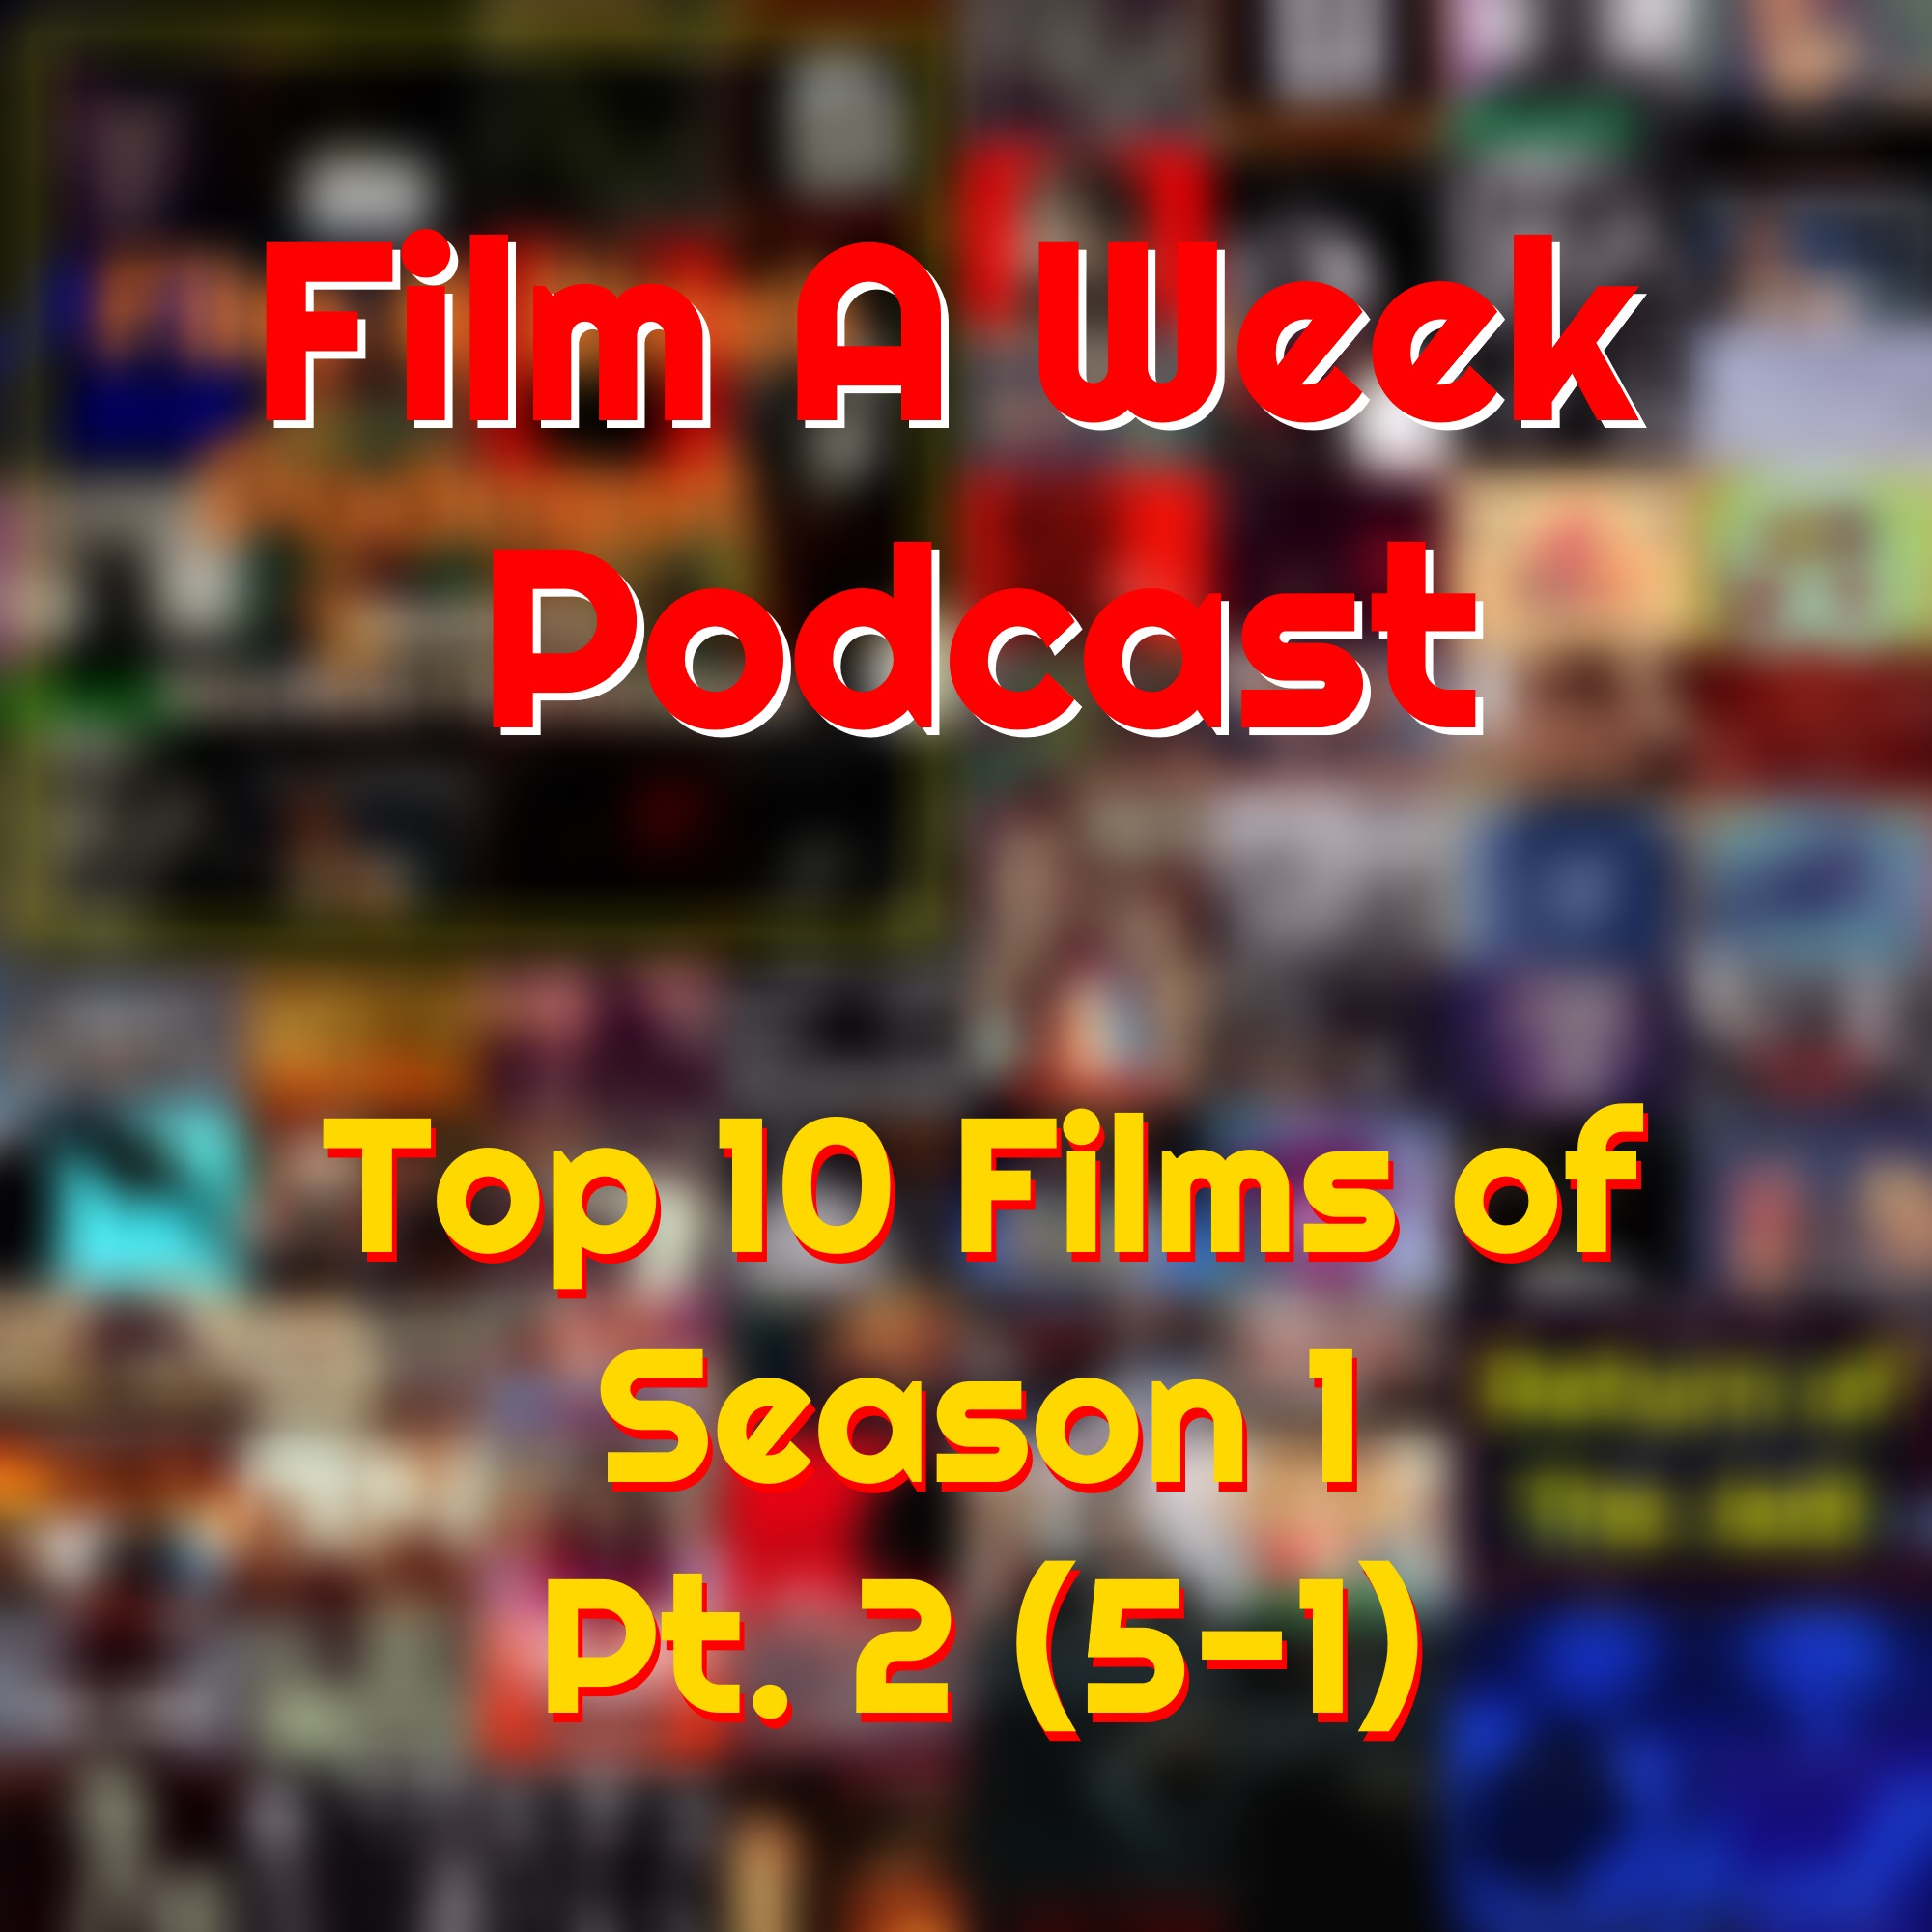 EP. 63, Pt. 2: top 10 films of season 1 (5 - 1) - In a special two-part episode, hosts Serg and Patrick reflect on their personal favorites from this past season (or year if you want to be technical about it)as they discuss their own top ten films they had never seen before the podcast. In this second part, numbers five to one are talked about as well as honorable mentions and dishonorable mentions.LISTEN ON: SOUNDCLOUD         iTUNES          STITCHER RADIO